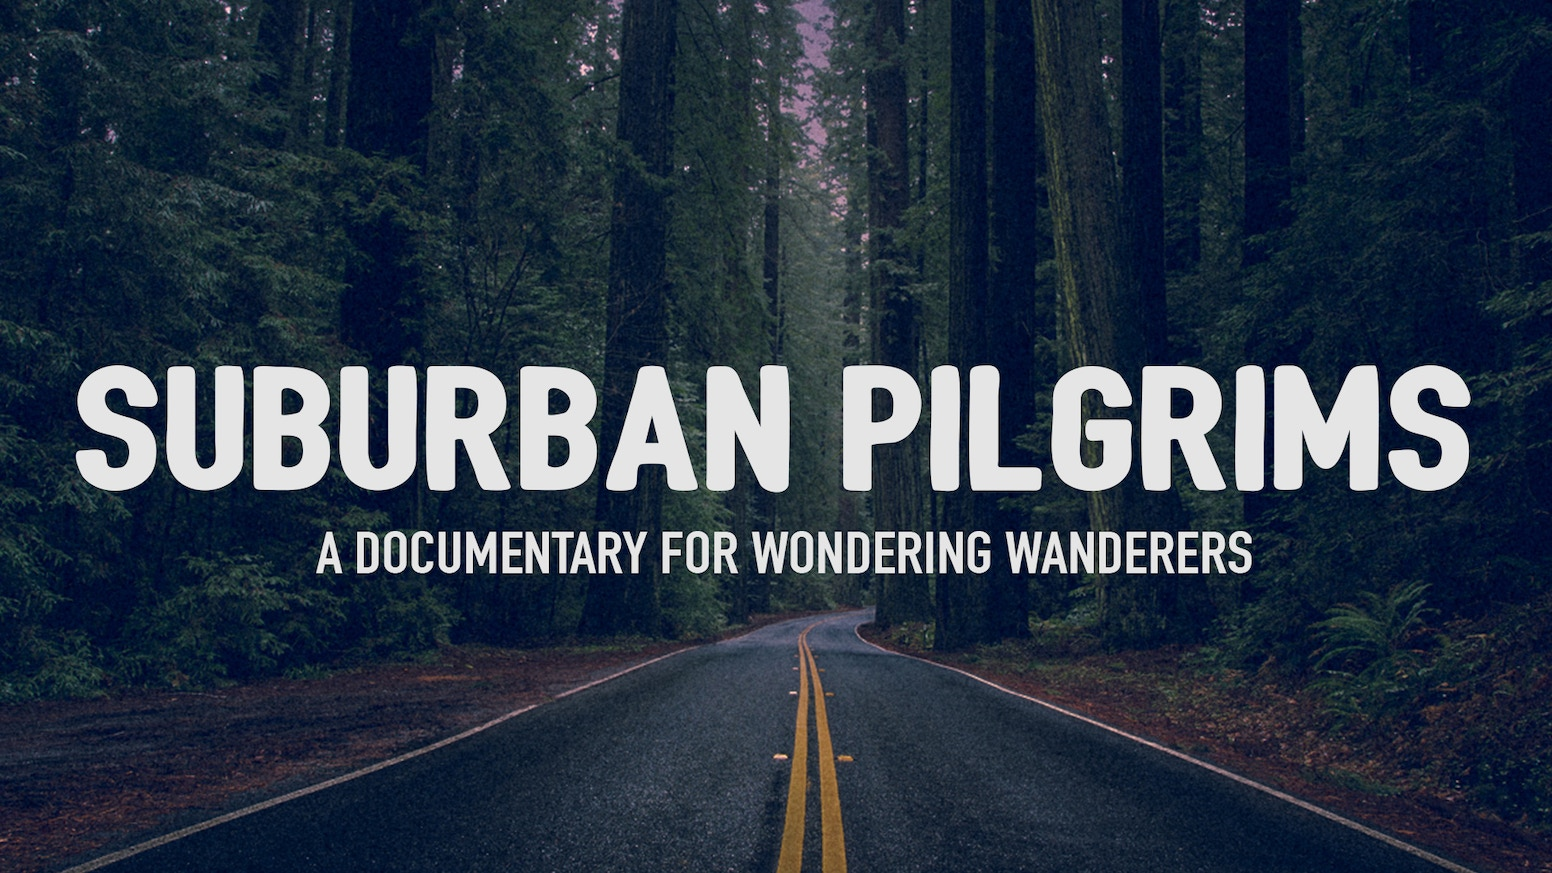 SUBURBAN PILGRIMS: A film for wondering wanderers by Jason